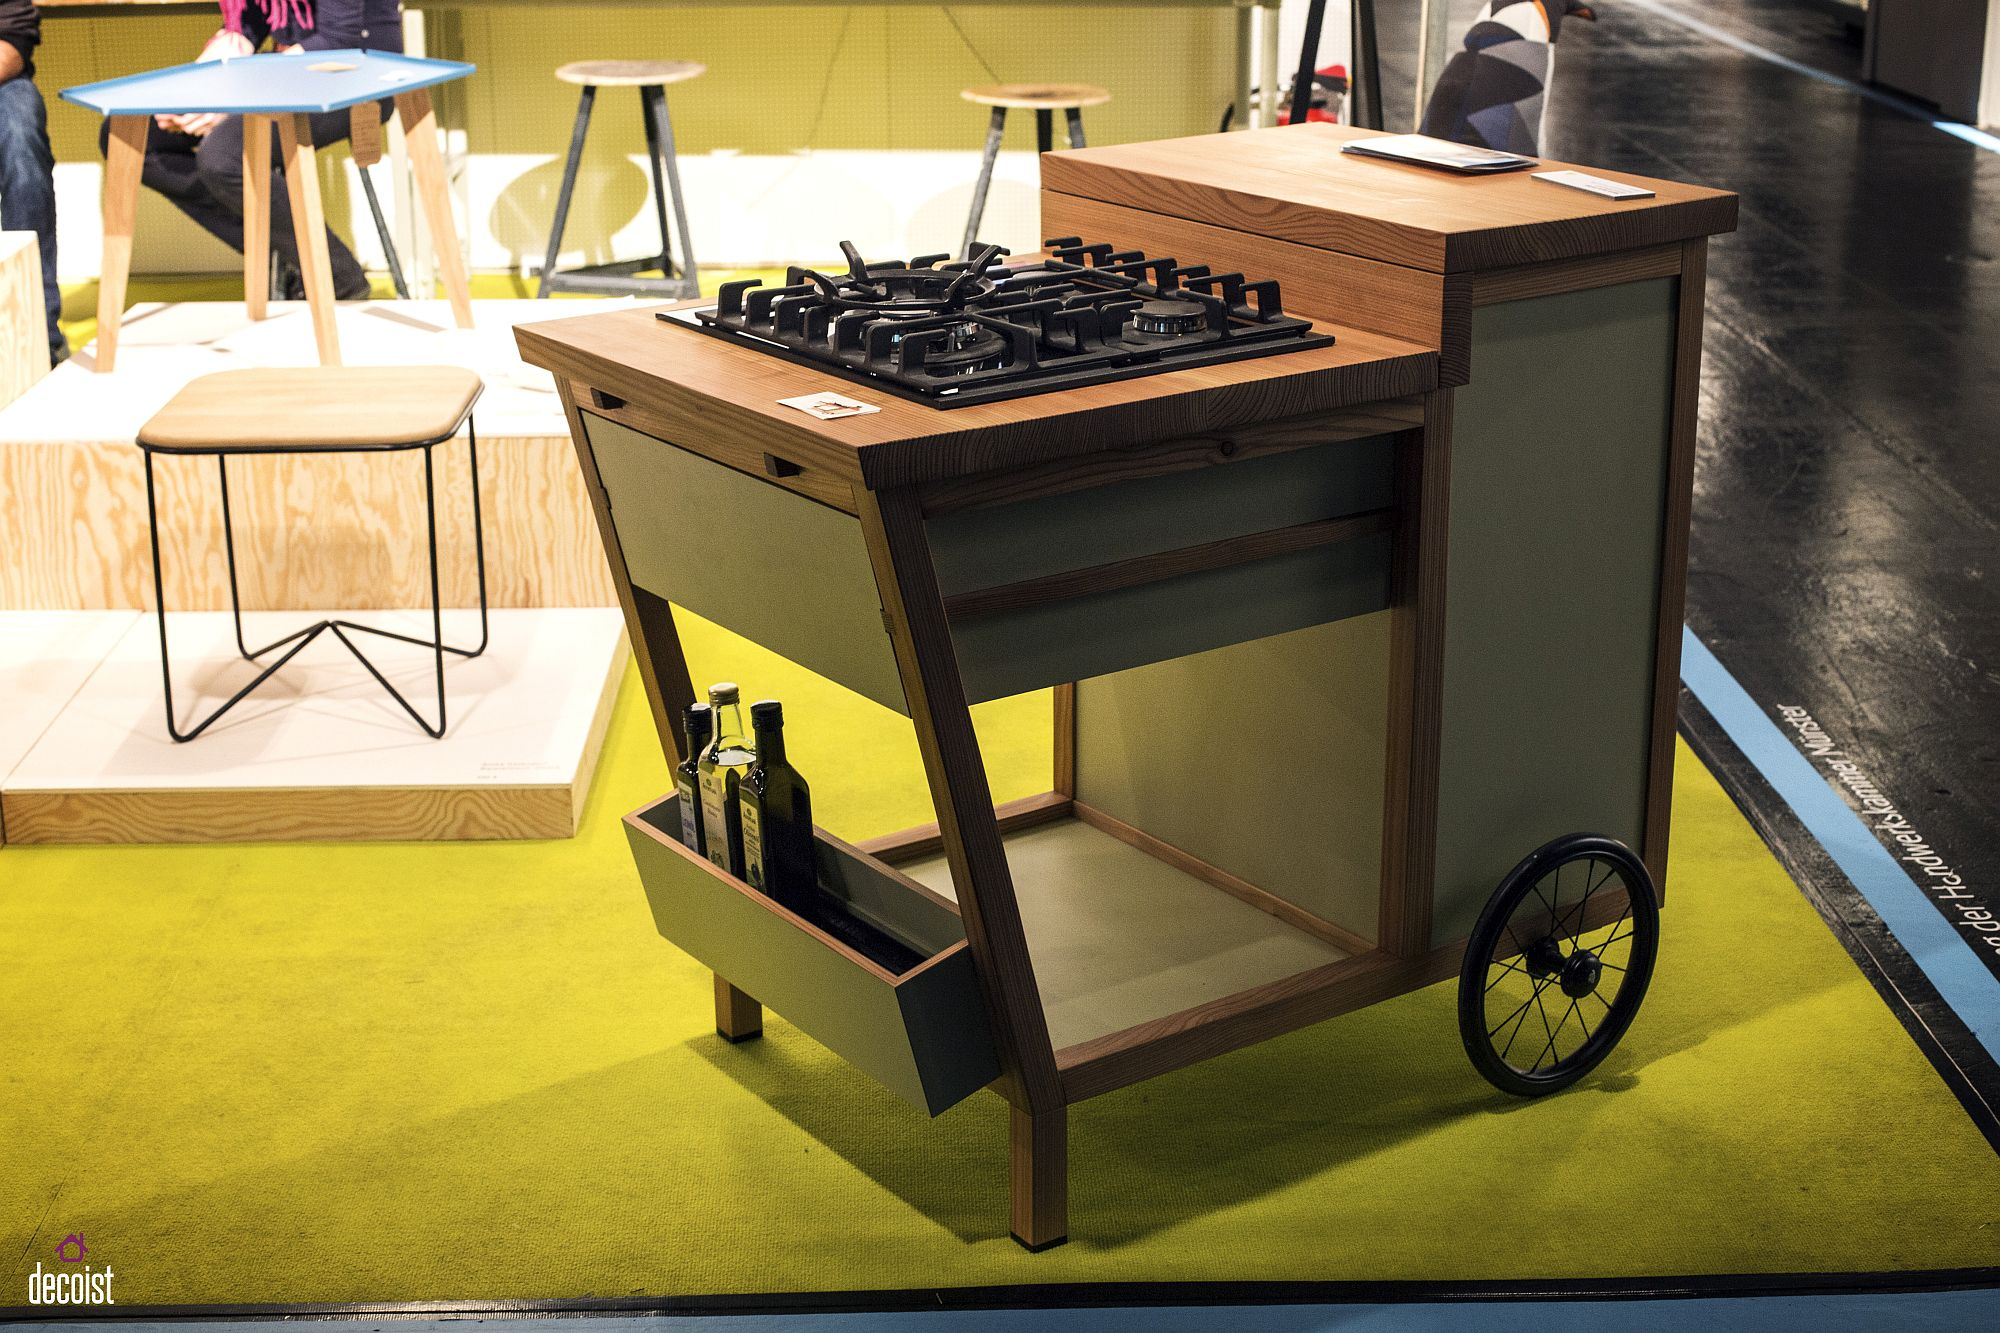 Smart decor on wheels allows you to redecorate with ease Roll in the Fun Times: 15 Trendy Décor Finds on Wheels